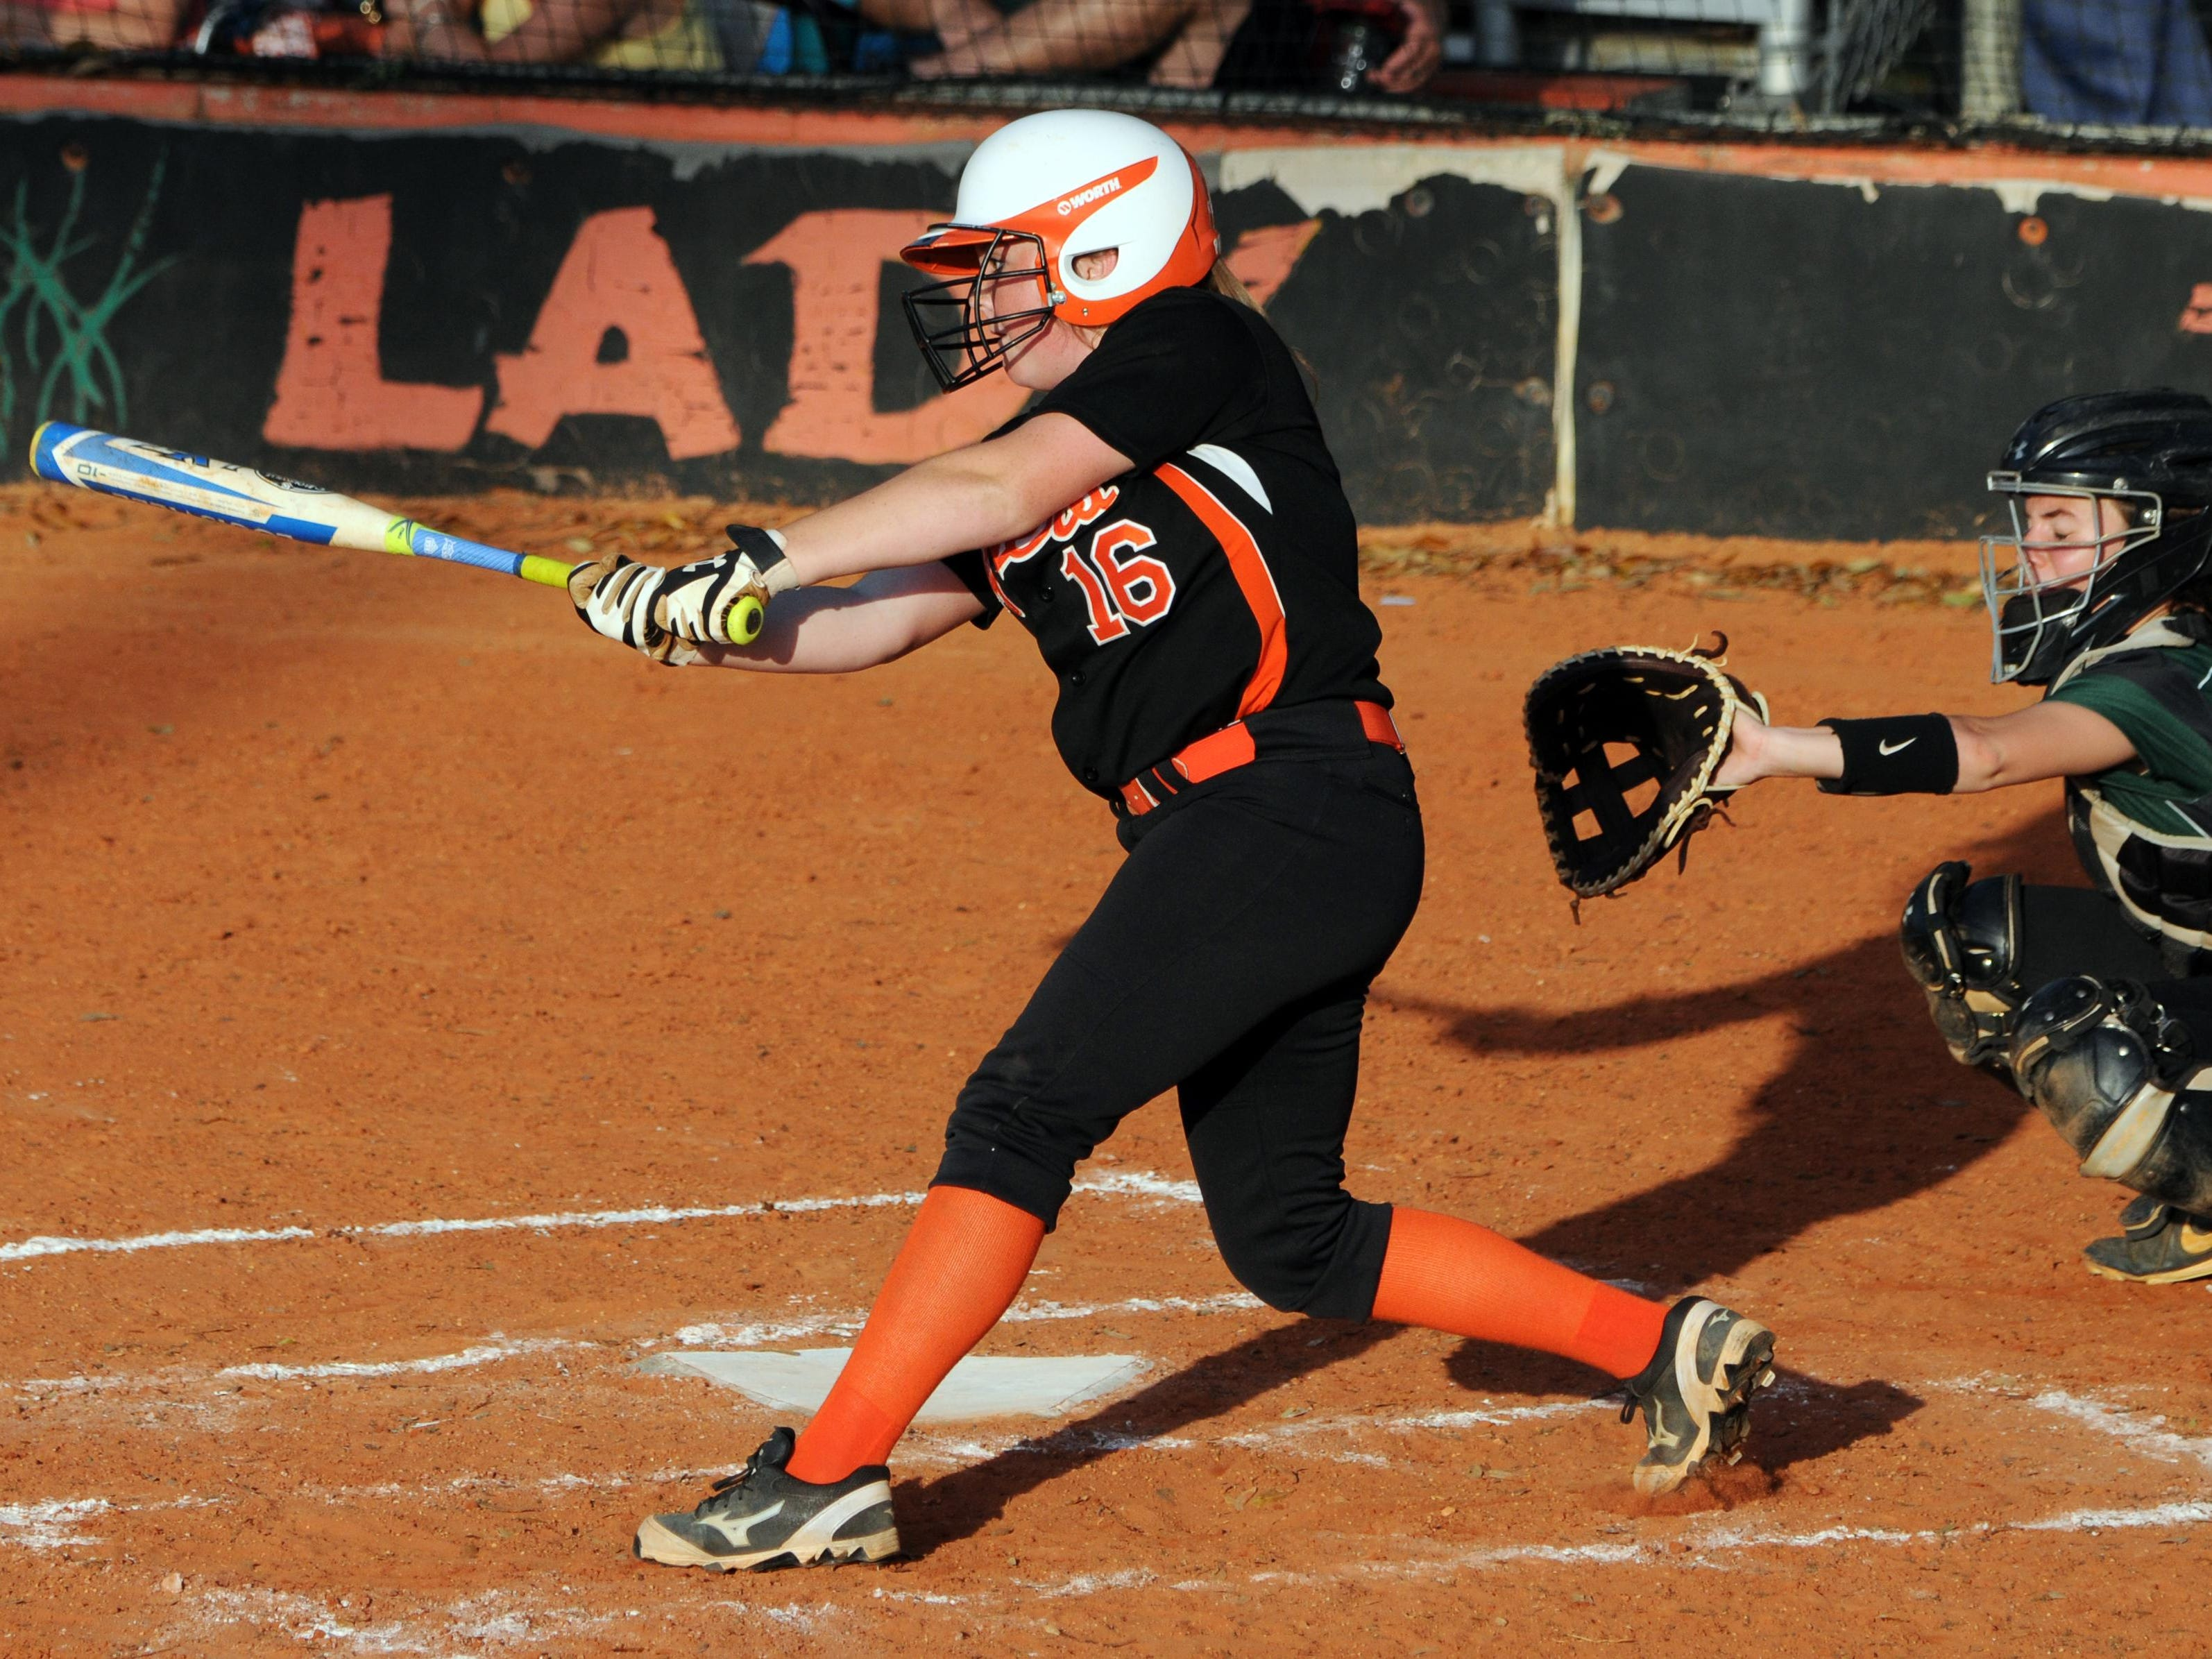 Cocoa's Savannah Pruitt puts the ball in play during Thursday's game against Melbourne.